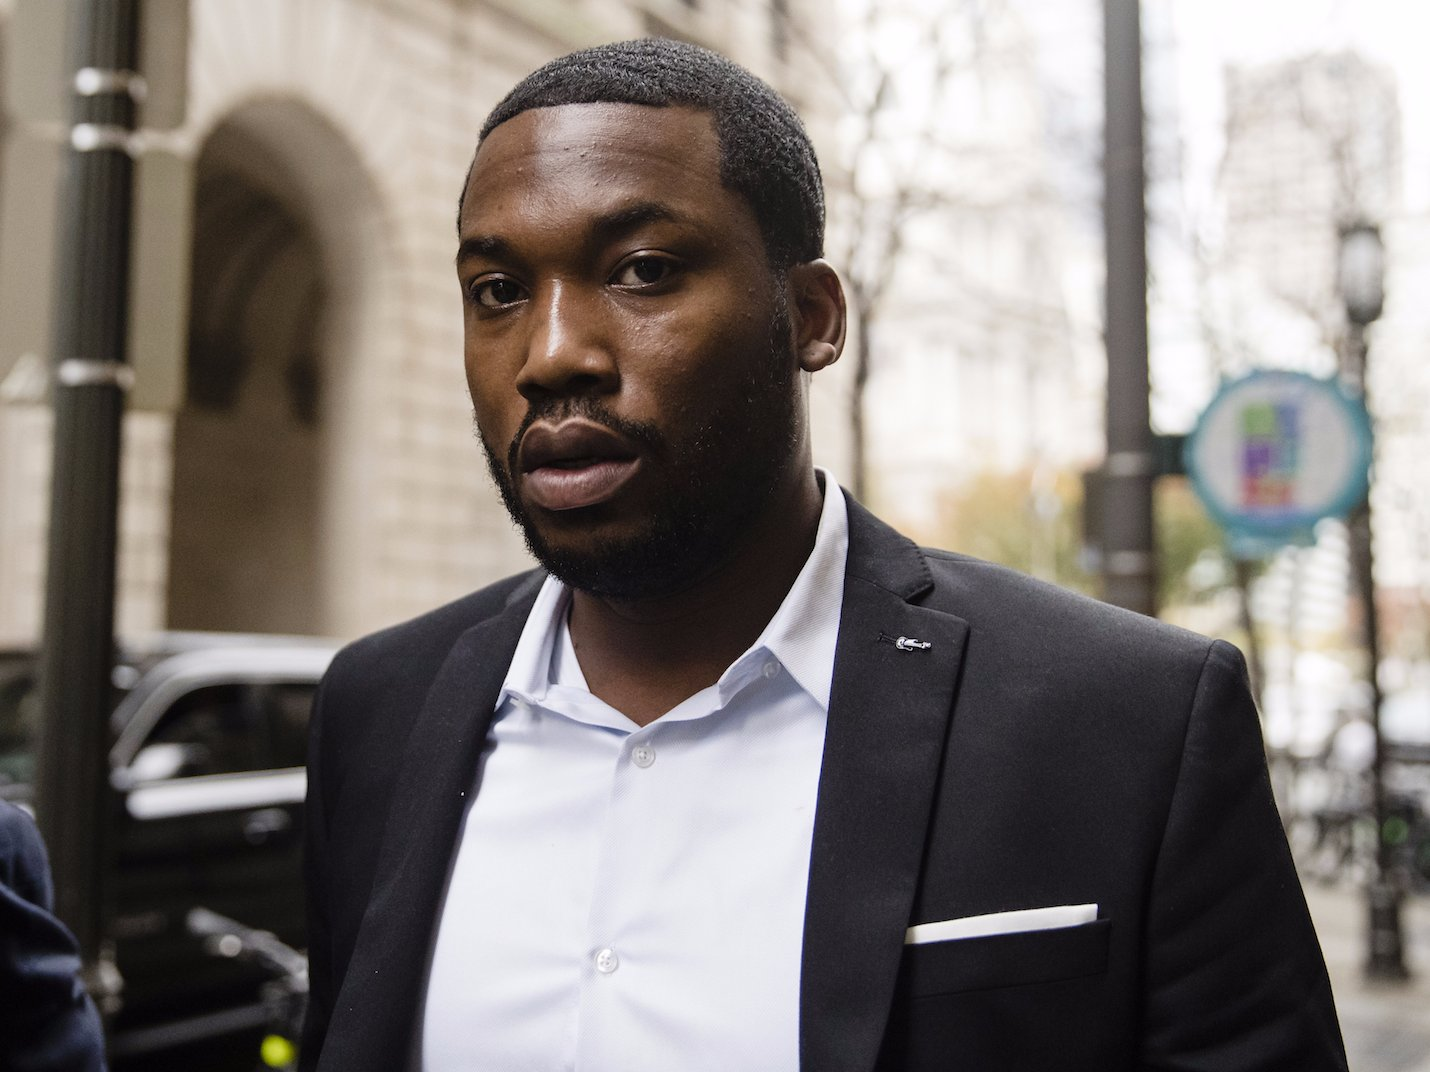 Meek Mill's Sentence May Have a Dark, Corrupt Backstory